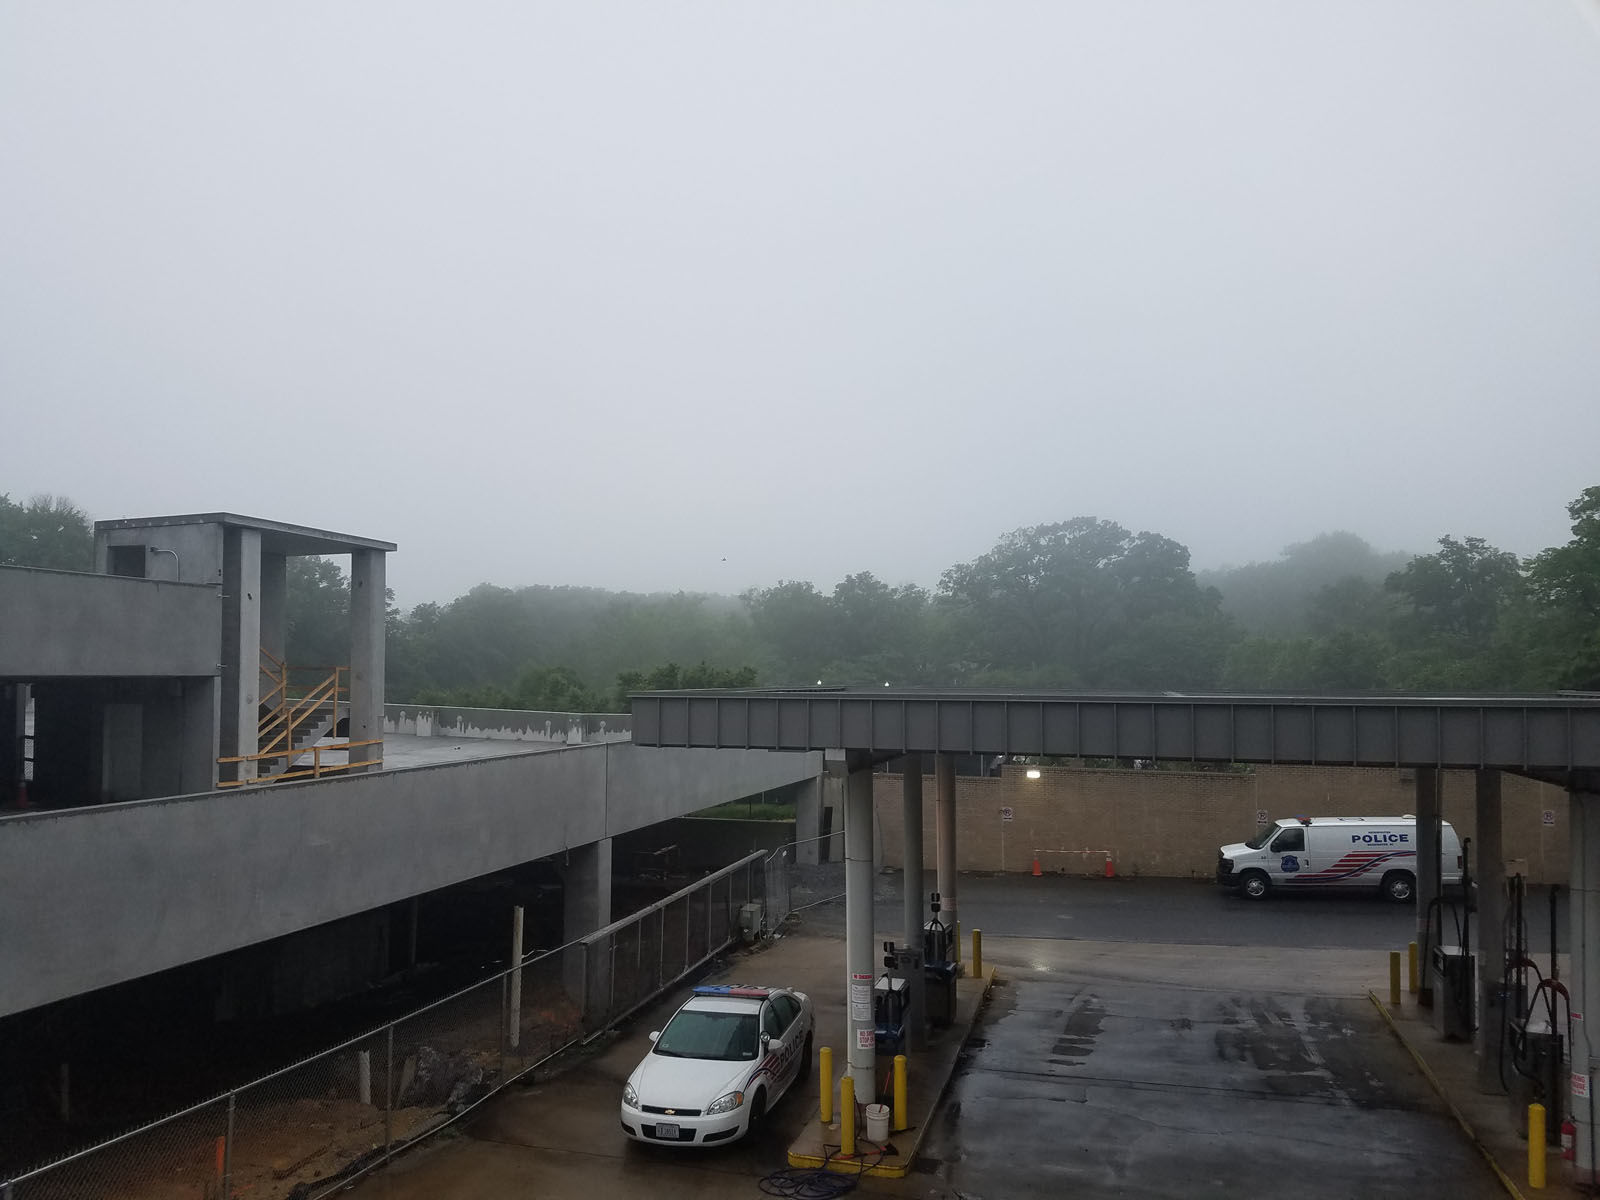 A gloomy day in Northwest D.C. (WTOP/Will Vitka)